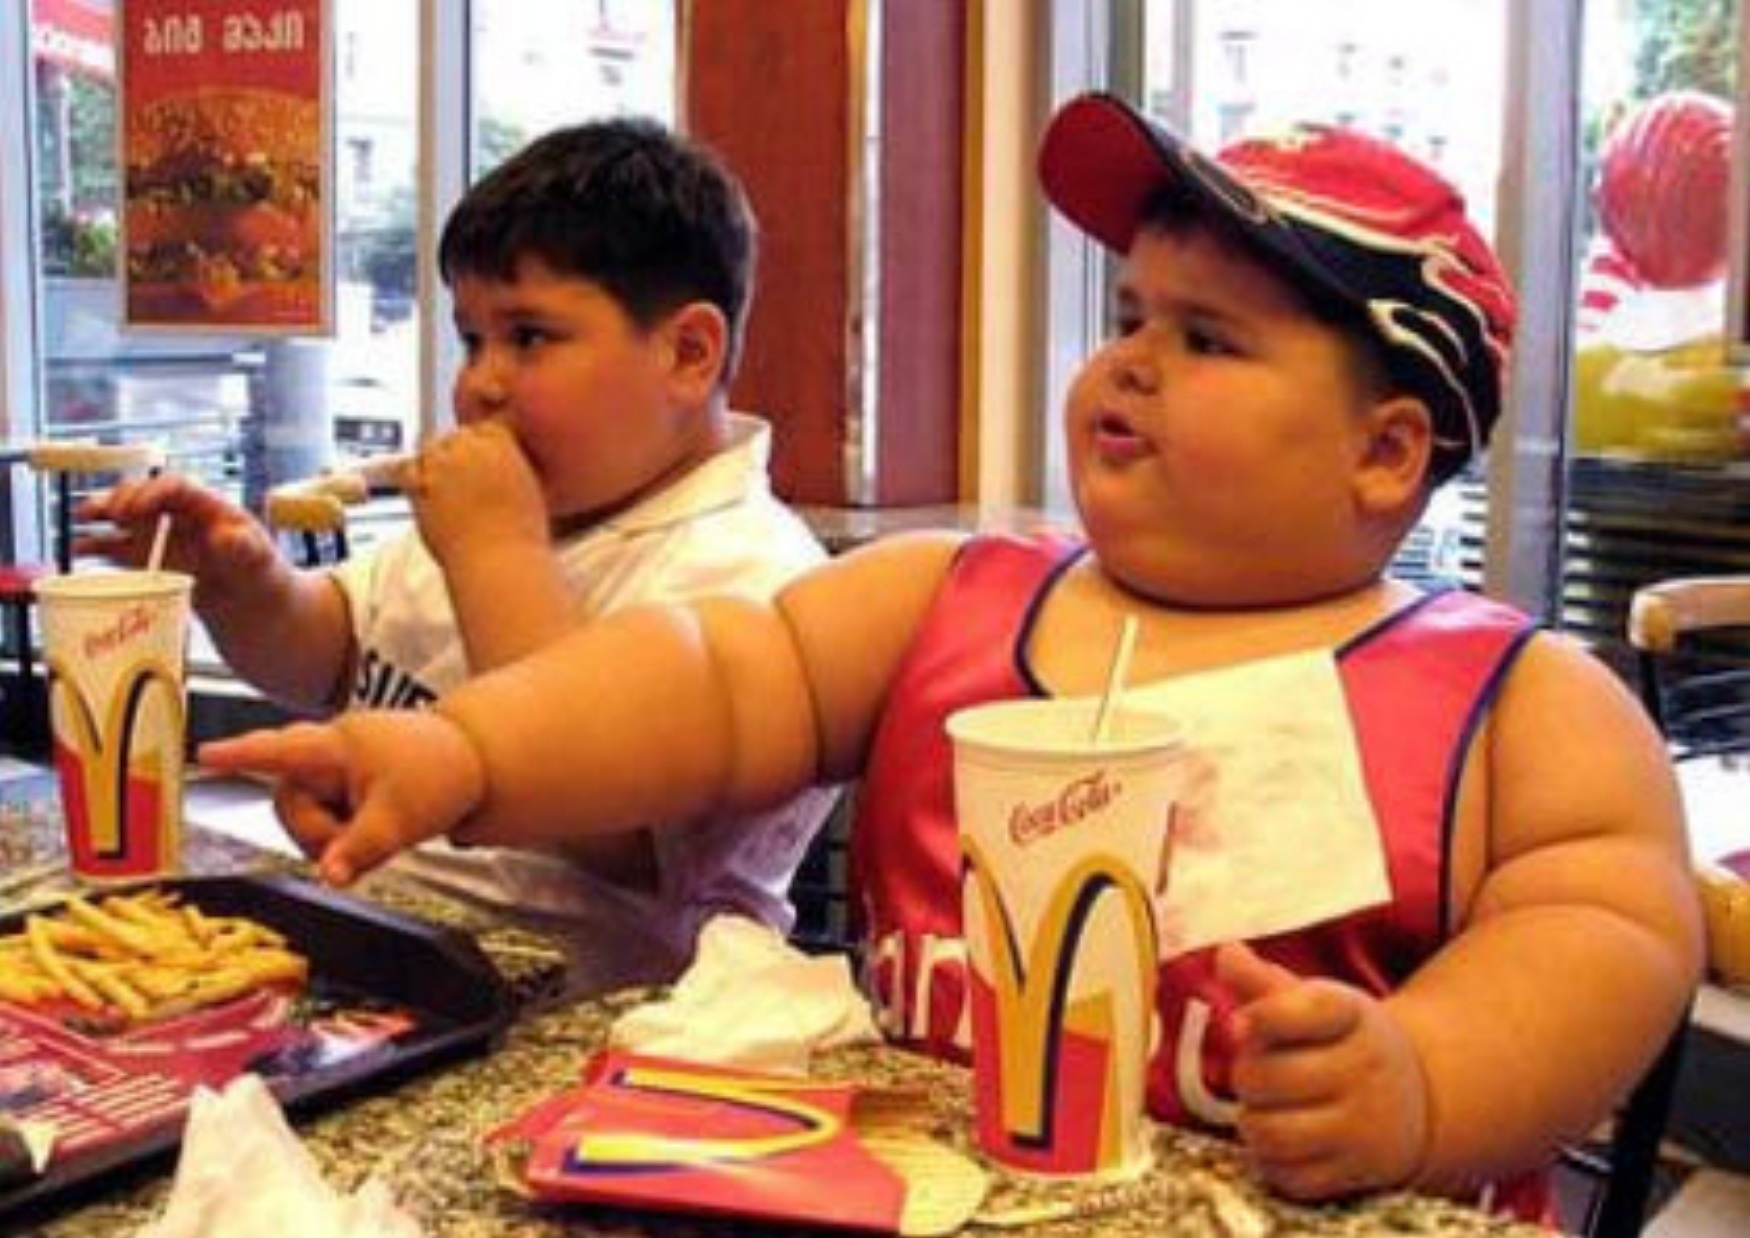 a fat kid eating mc donalds